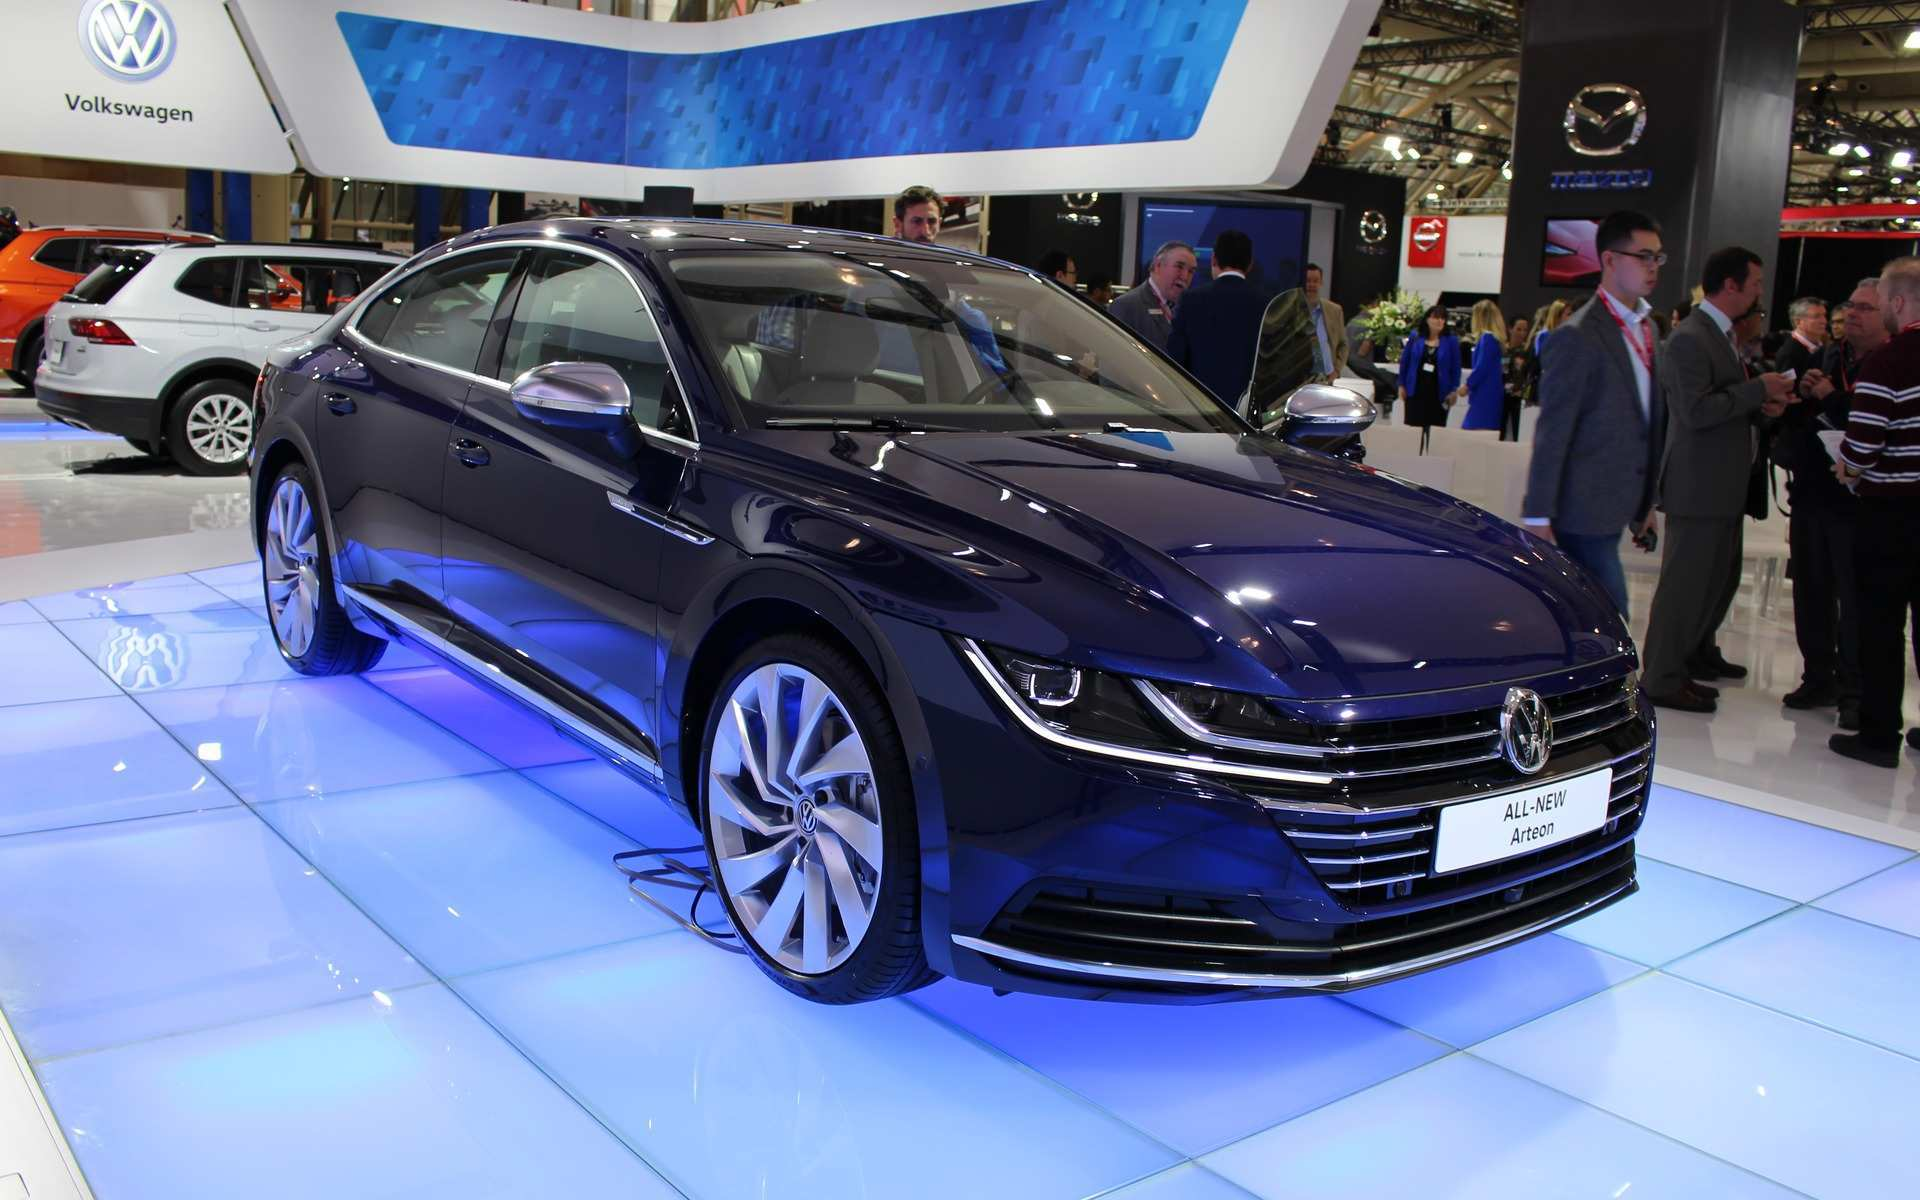 17 Great The Volkswagen Canada 2019 Specs And Review Ratings for The Volkswagen Canada 2019 Specs And Review